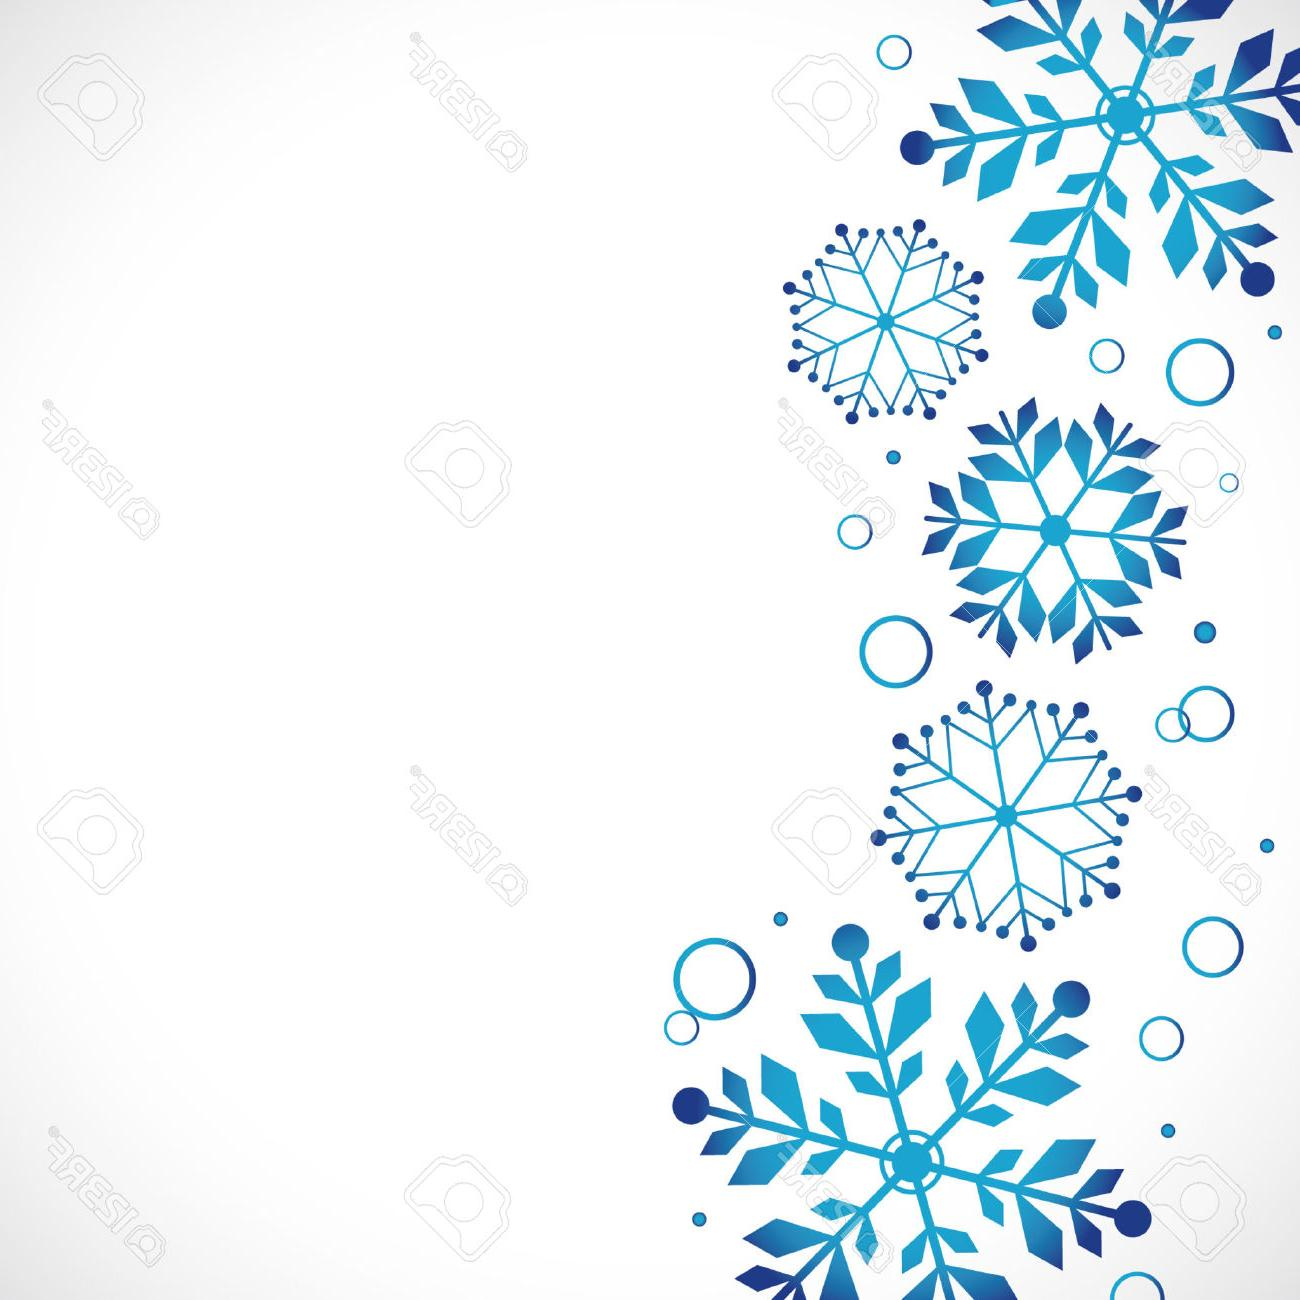 Free winter graphics clipart transparent stock Best Winter Snowflakes Border Clip Art Drawing » Free Vector Art ... transparent stock